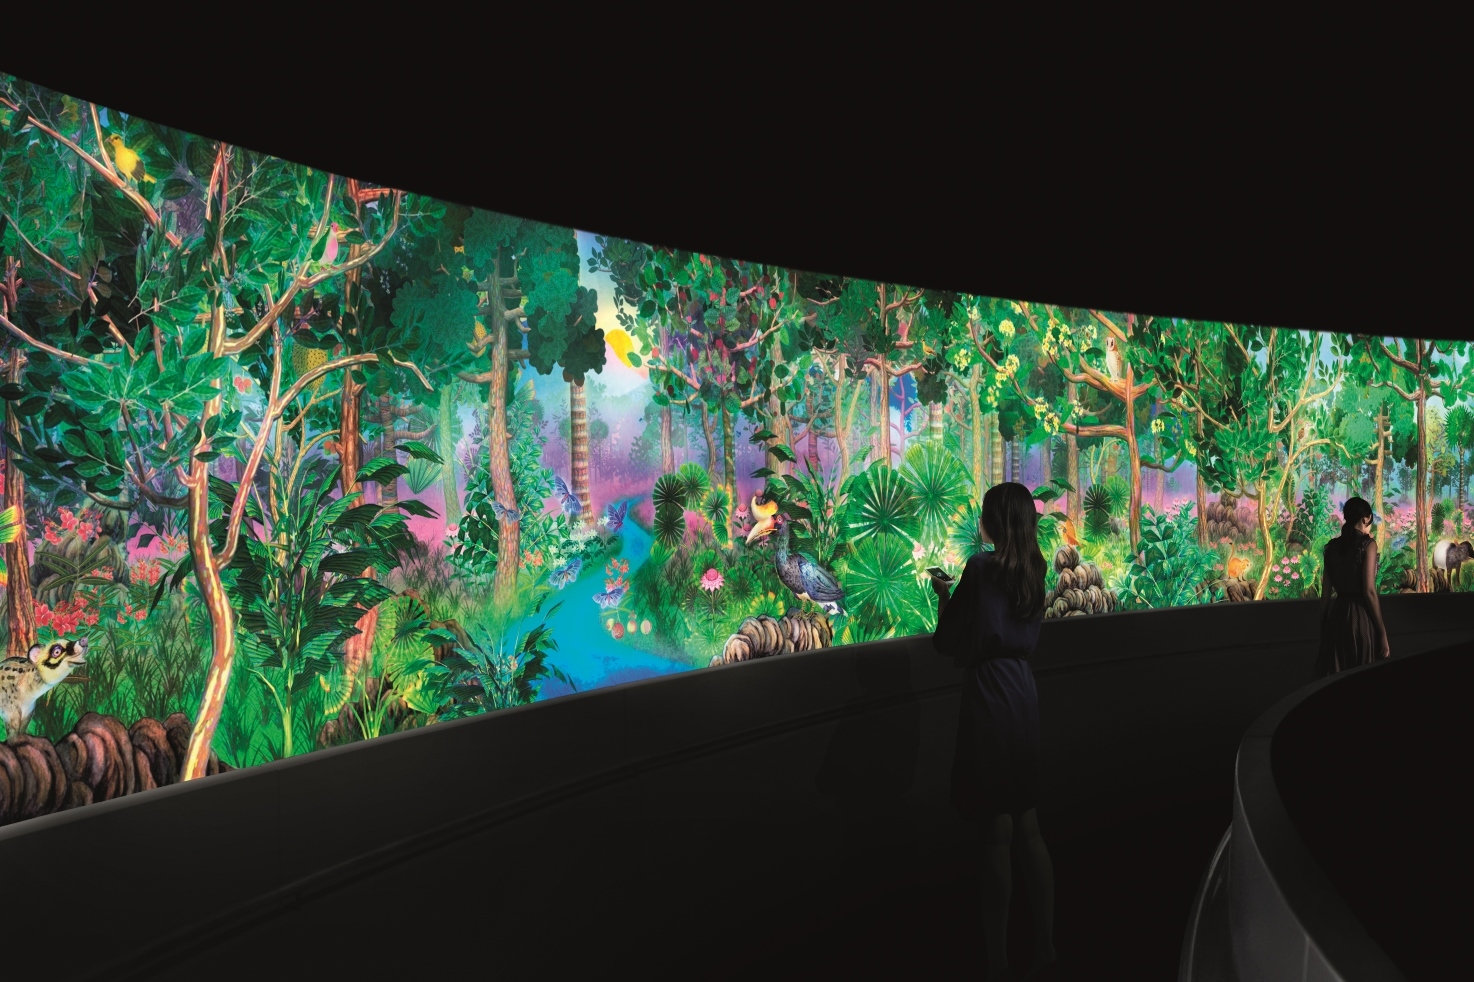 Interview: teamLab (Story of the Forest)